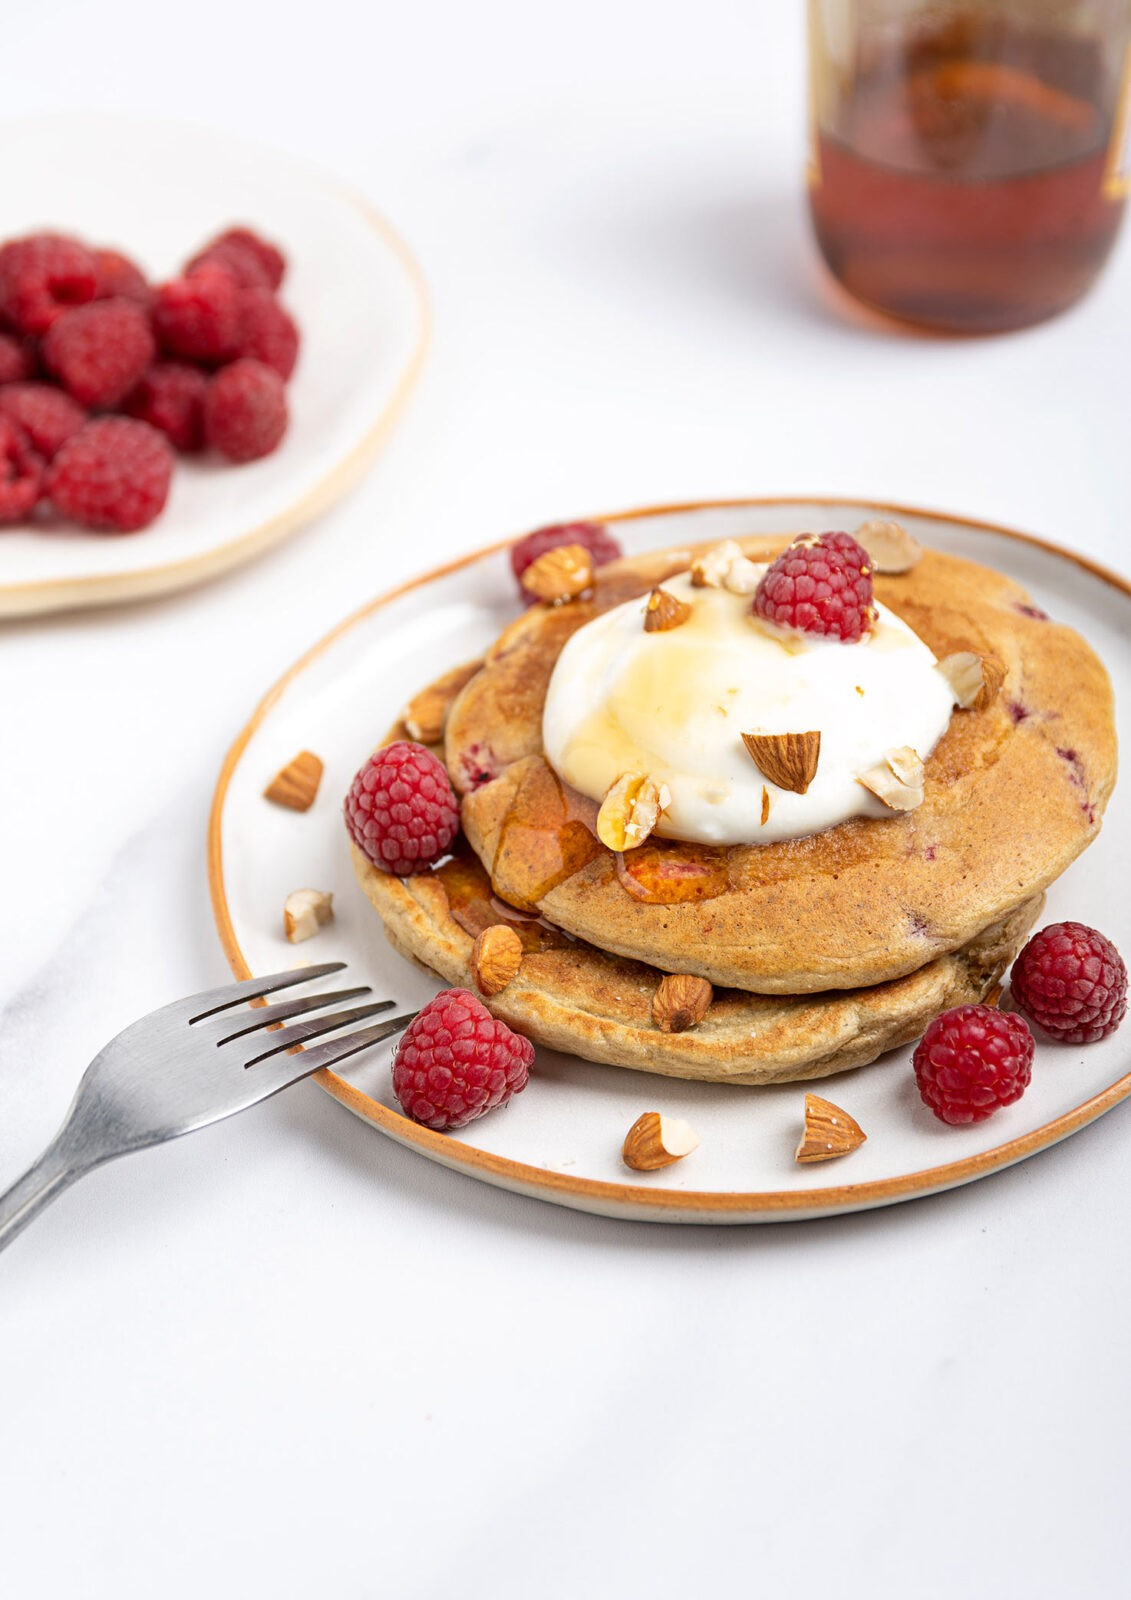 Raspberry low calorie pancakes are served on the white plate with fork and topped with yogurt, almonds and raspberries   Hurry The Food Up